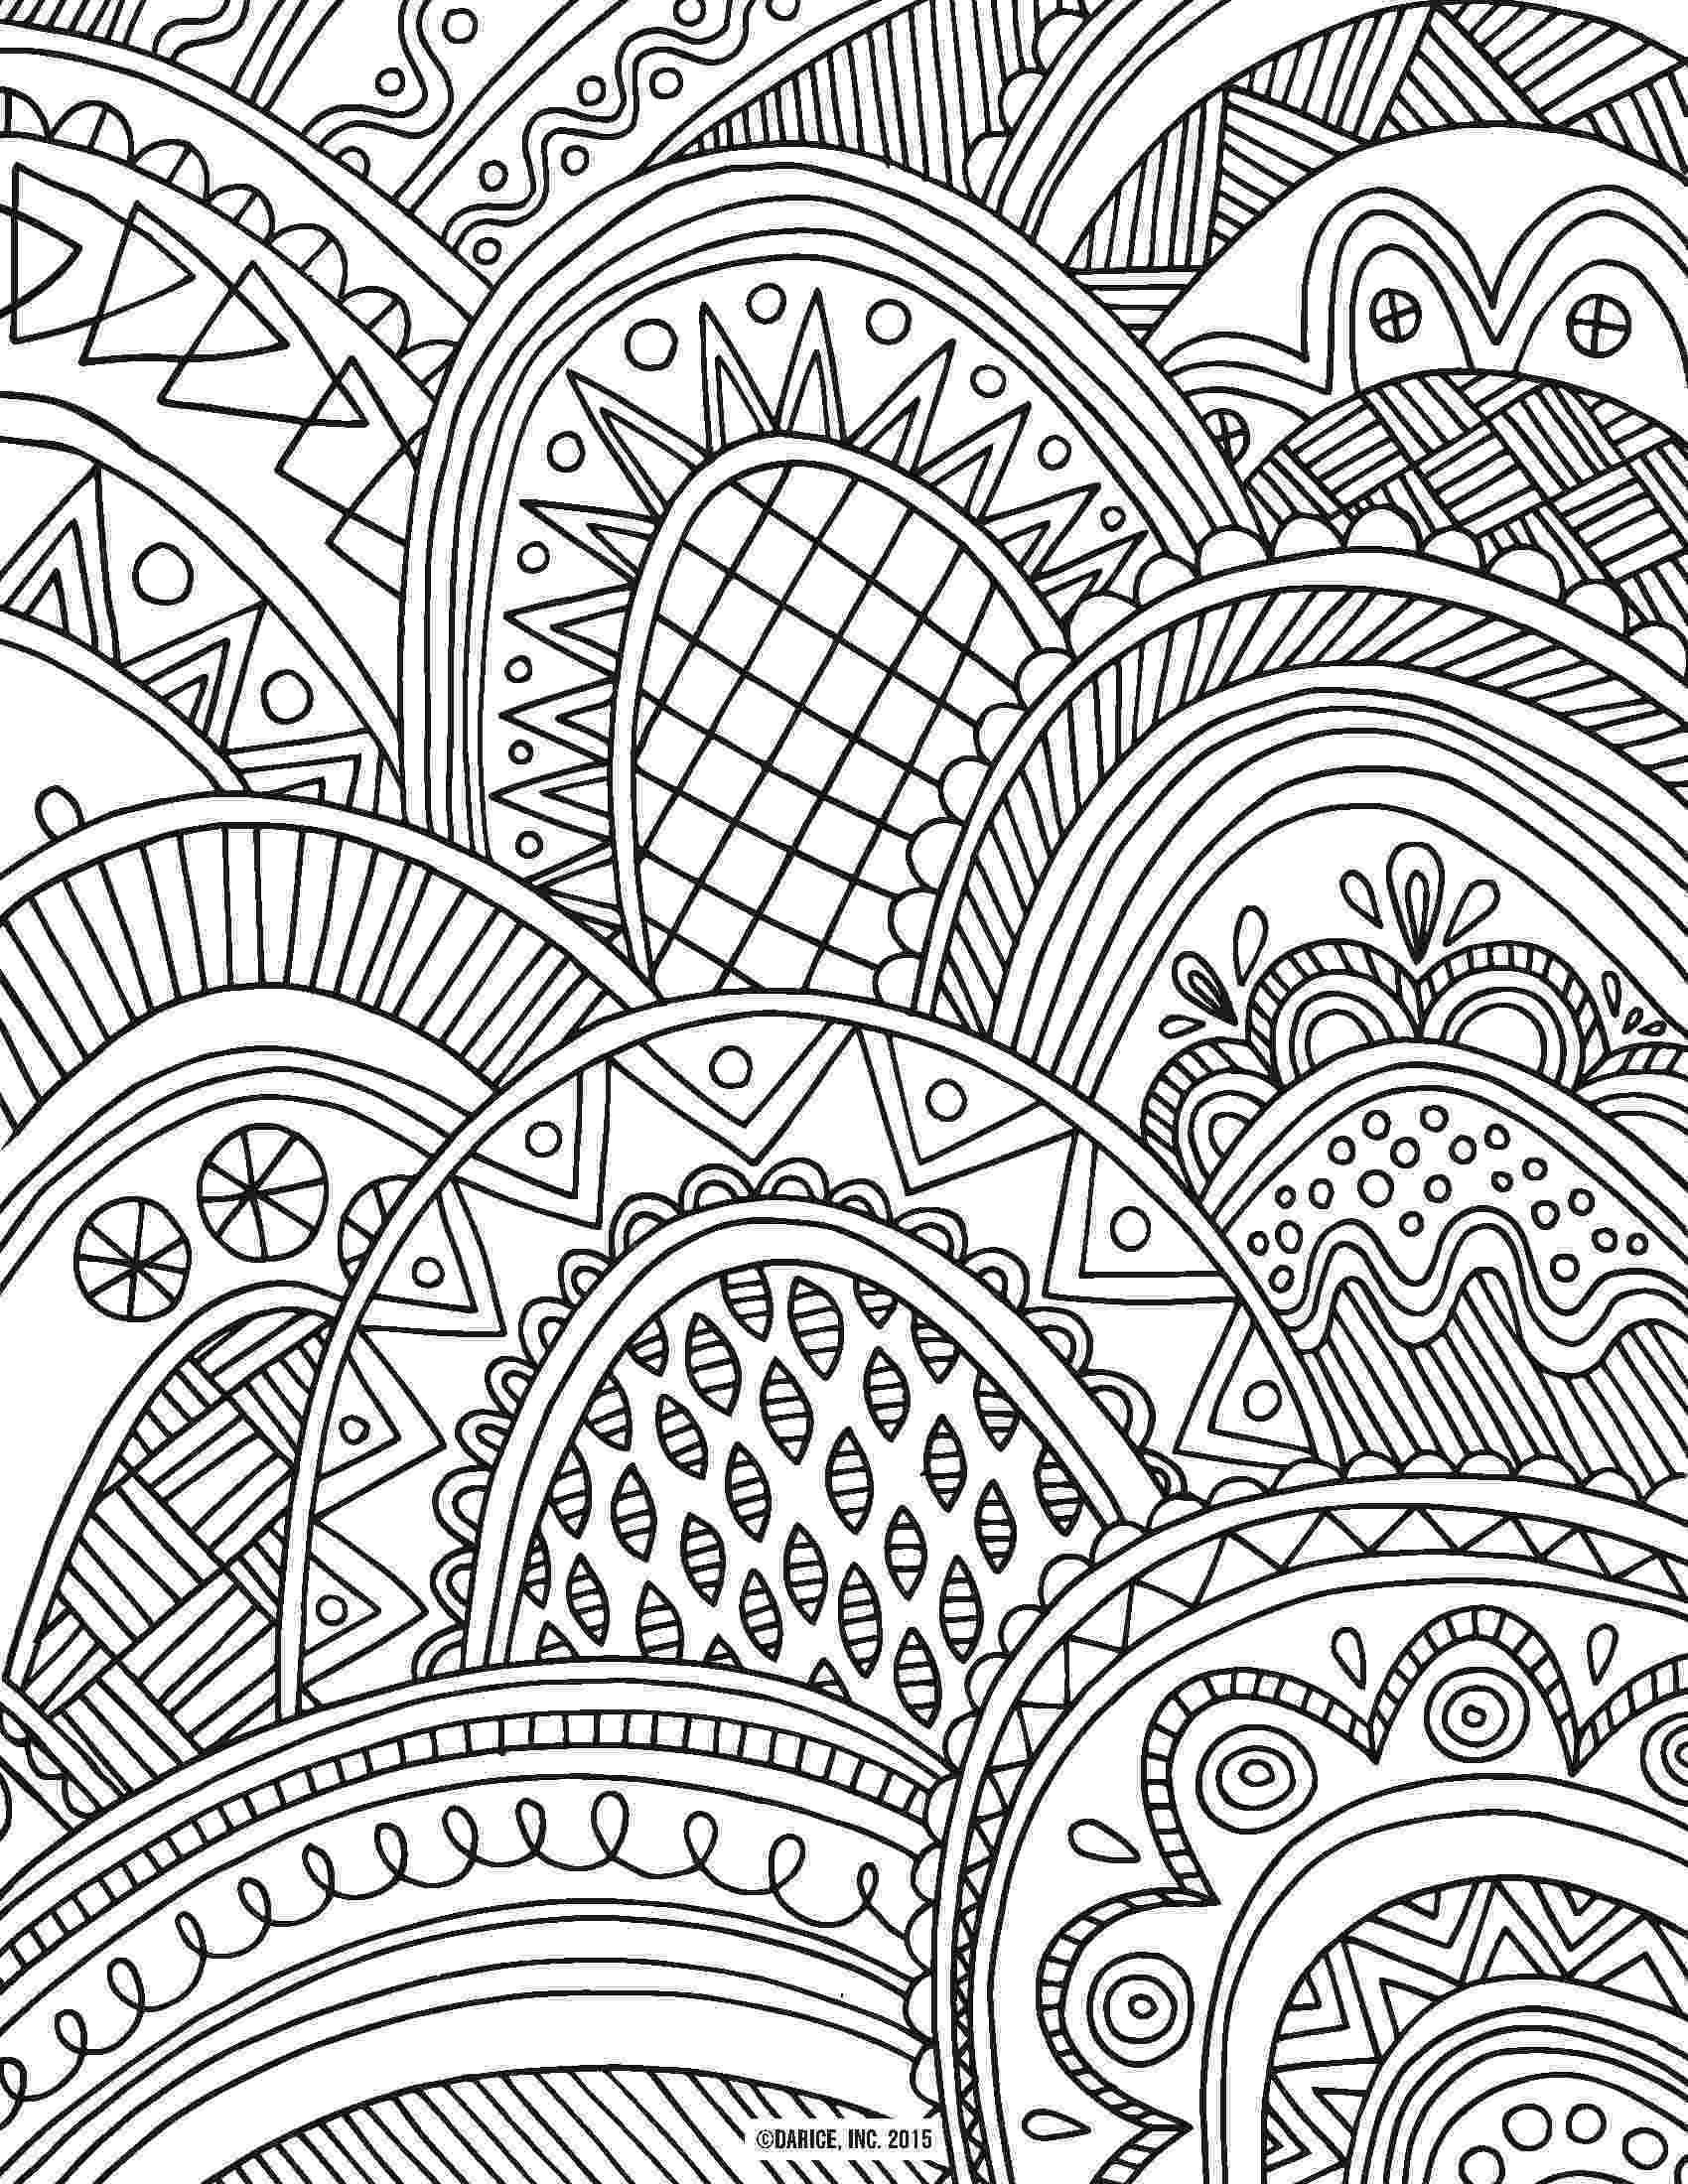 colouring pages for adults print adult coloring book printable coloring pages pages adults colouring for print